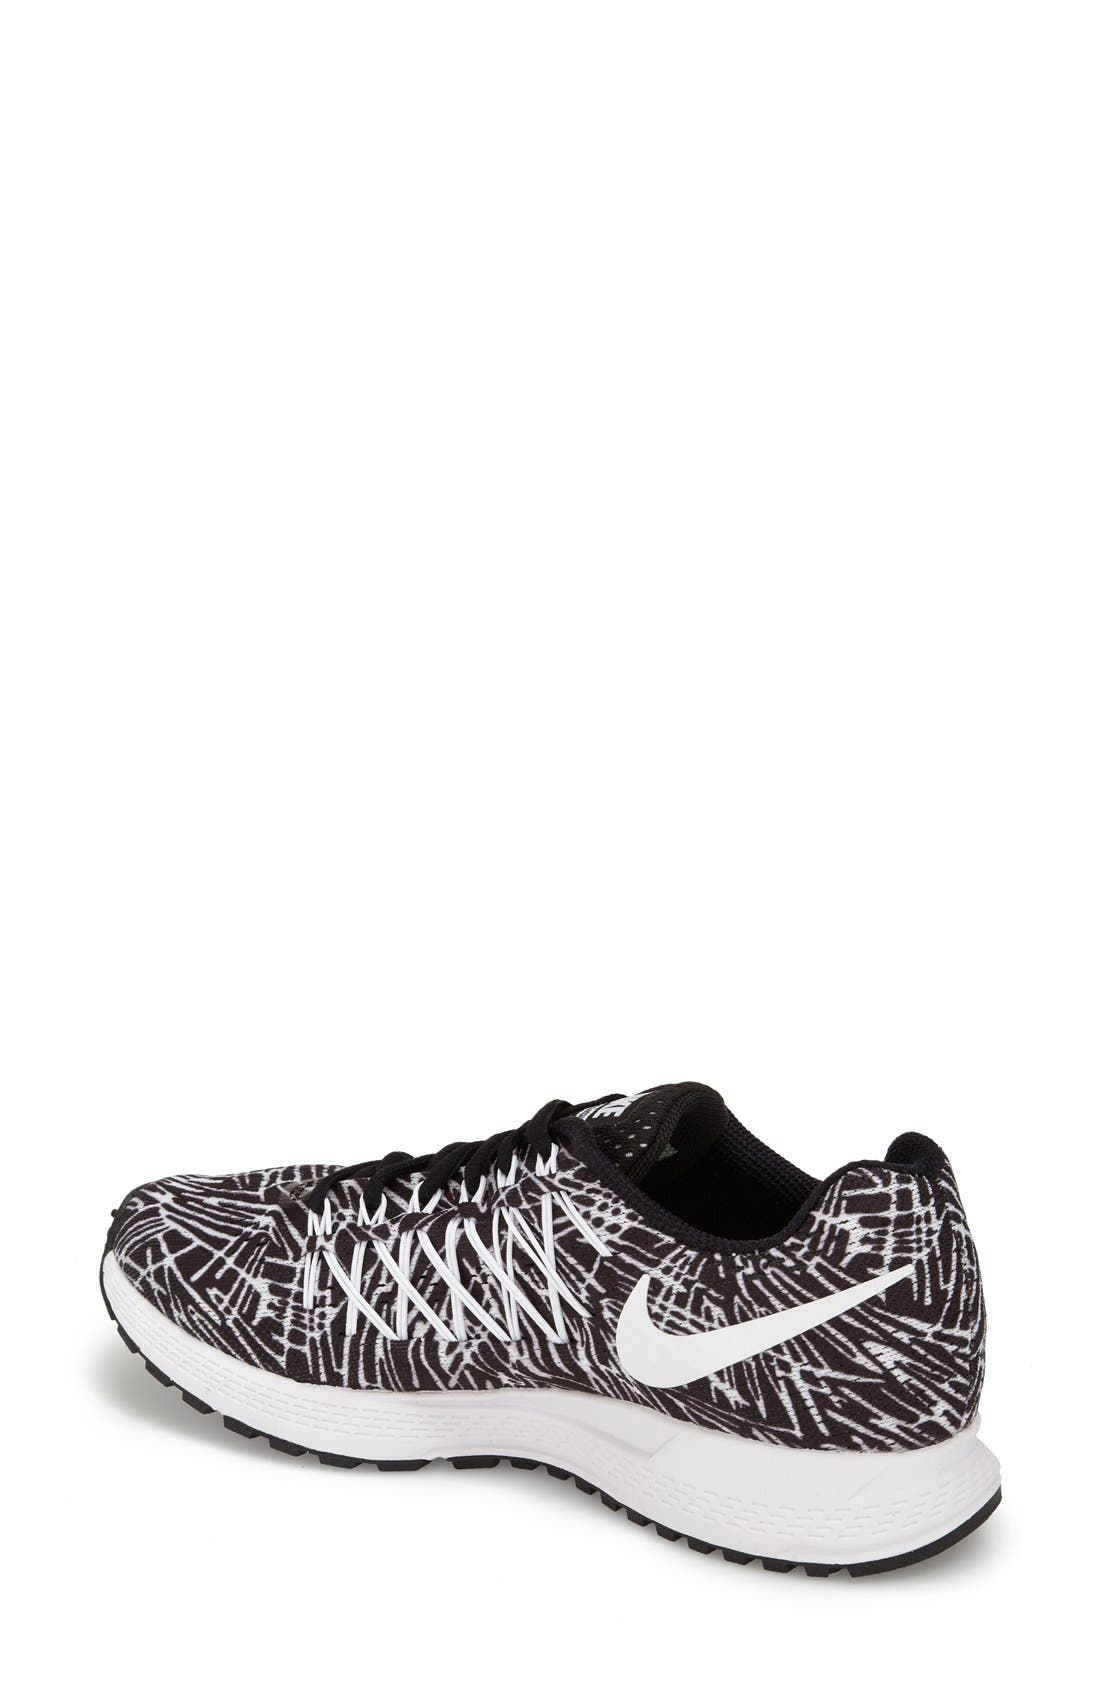 'Air Zoom Pegasus 32' Running Shoe,                             Alternate thumbnail 3, color,                             001